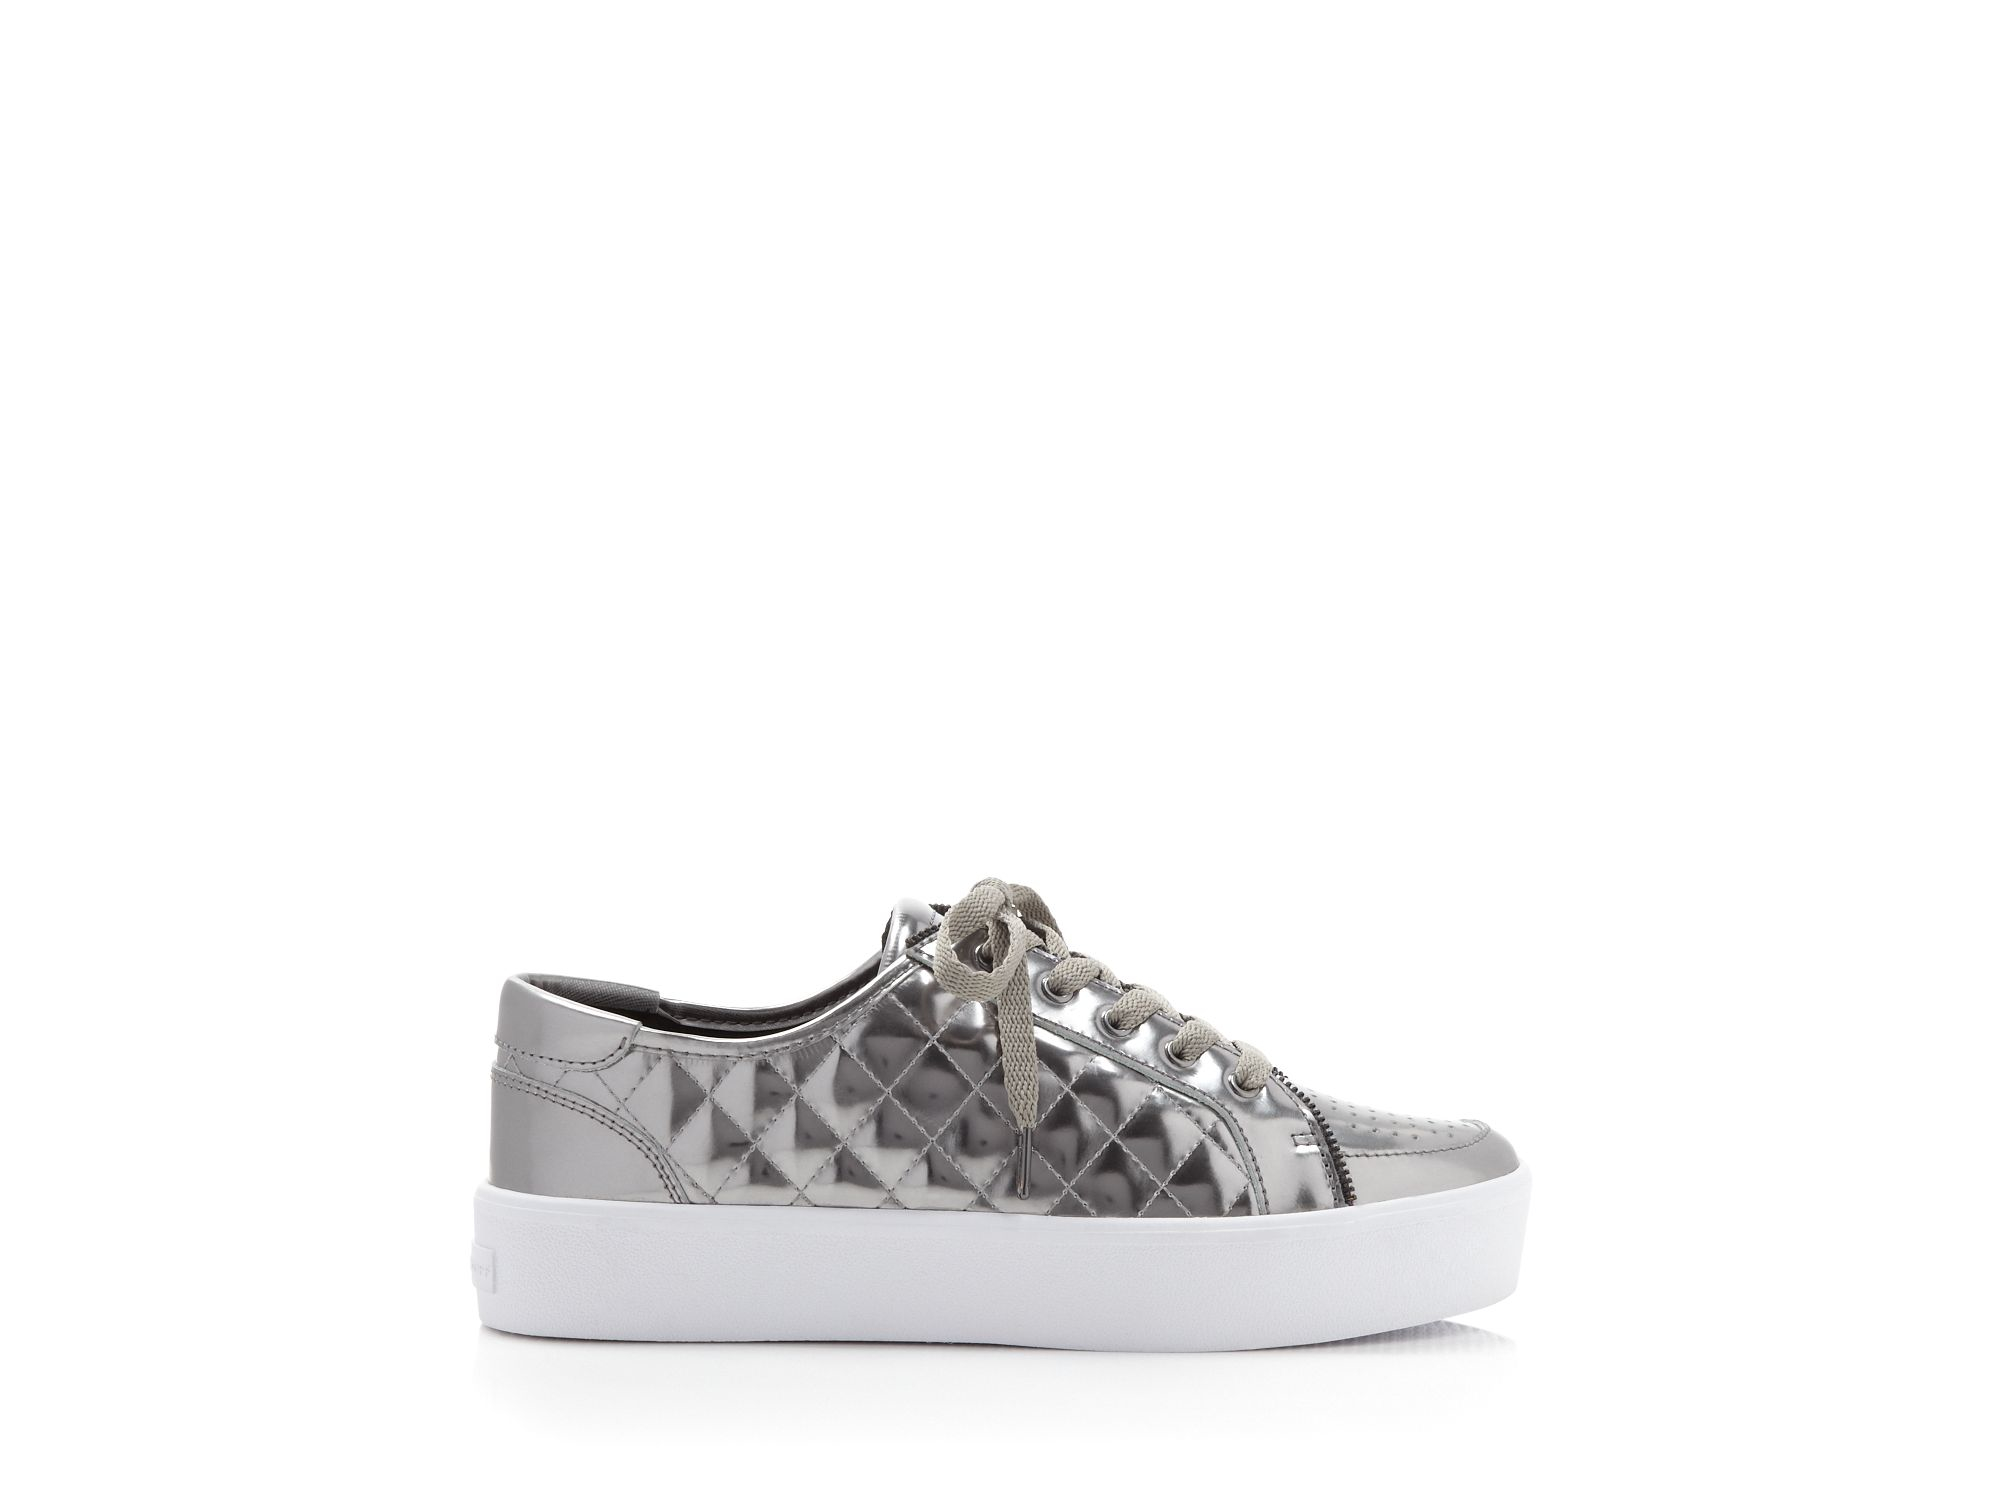 Rebecca Minkoff Leather Metallic Quilted Platform Sneakers